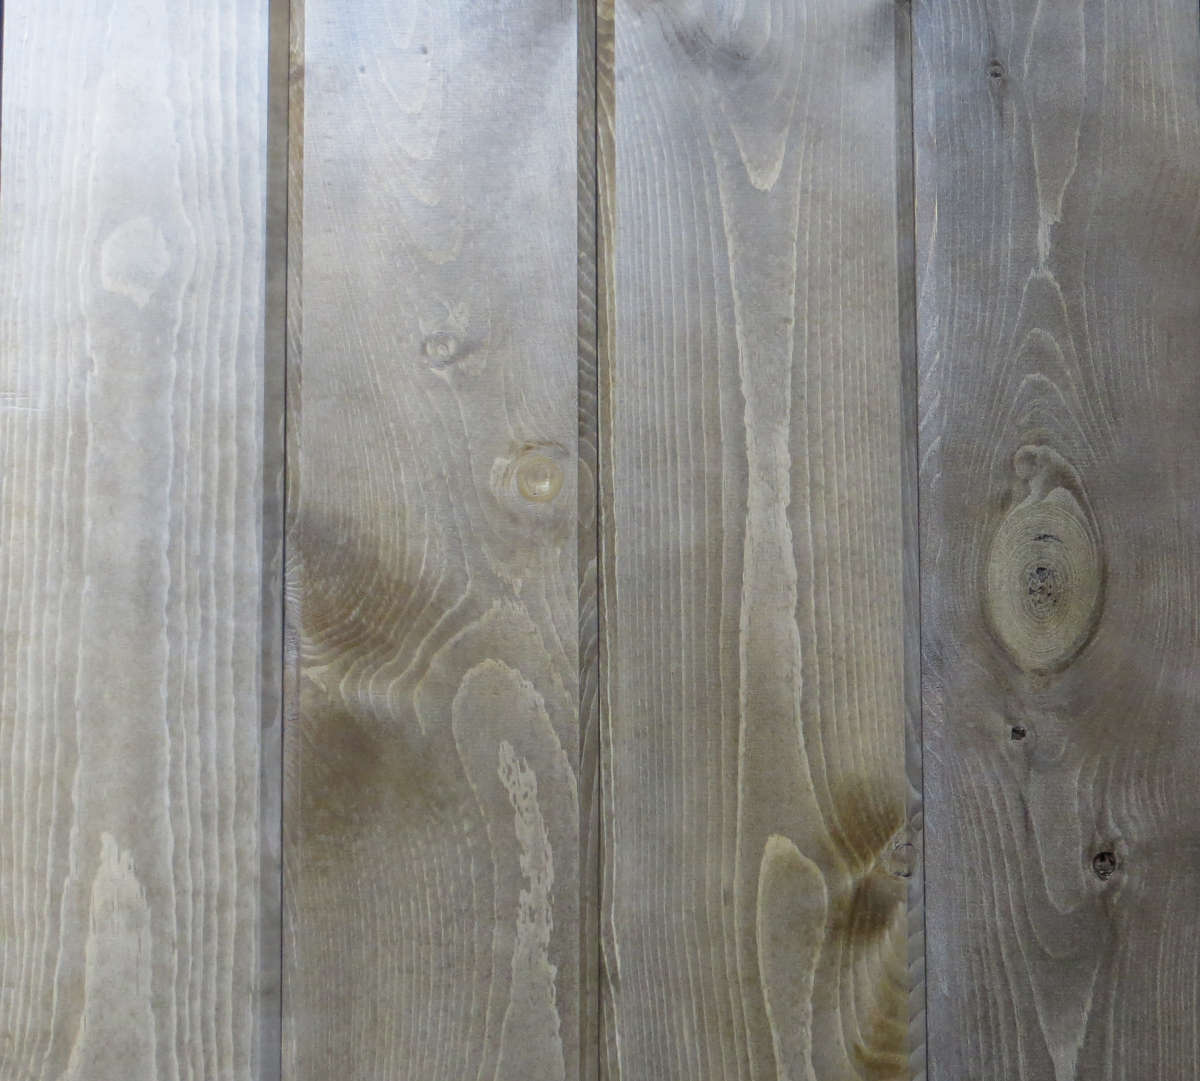 Wicked Wood Pine Paneling - ICED CARAMEL - Stain plus 2 Clear Coats  (BL20-04)